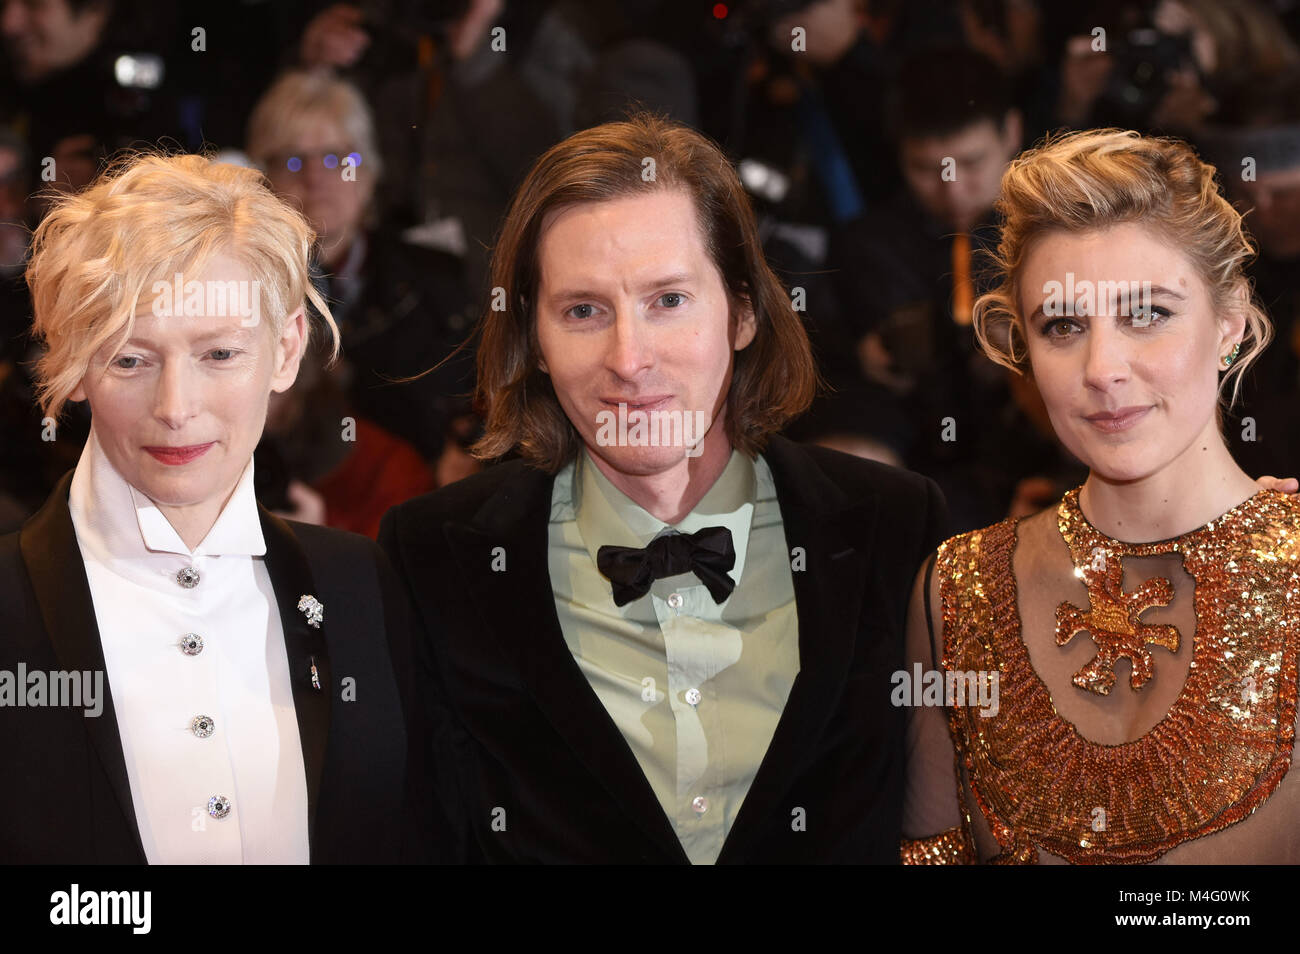 Berlin, Germany. 15th Feb, 2018. Tilda Swinton, Wes Anderson and Greta Gerwig attending the 'Isle Of Dogs' - Stock Image